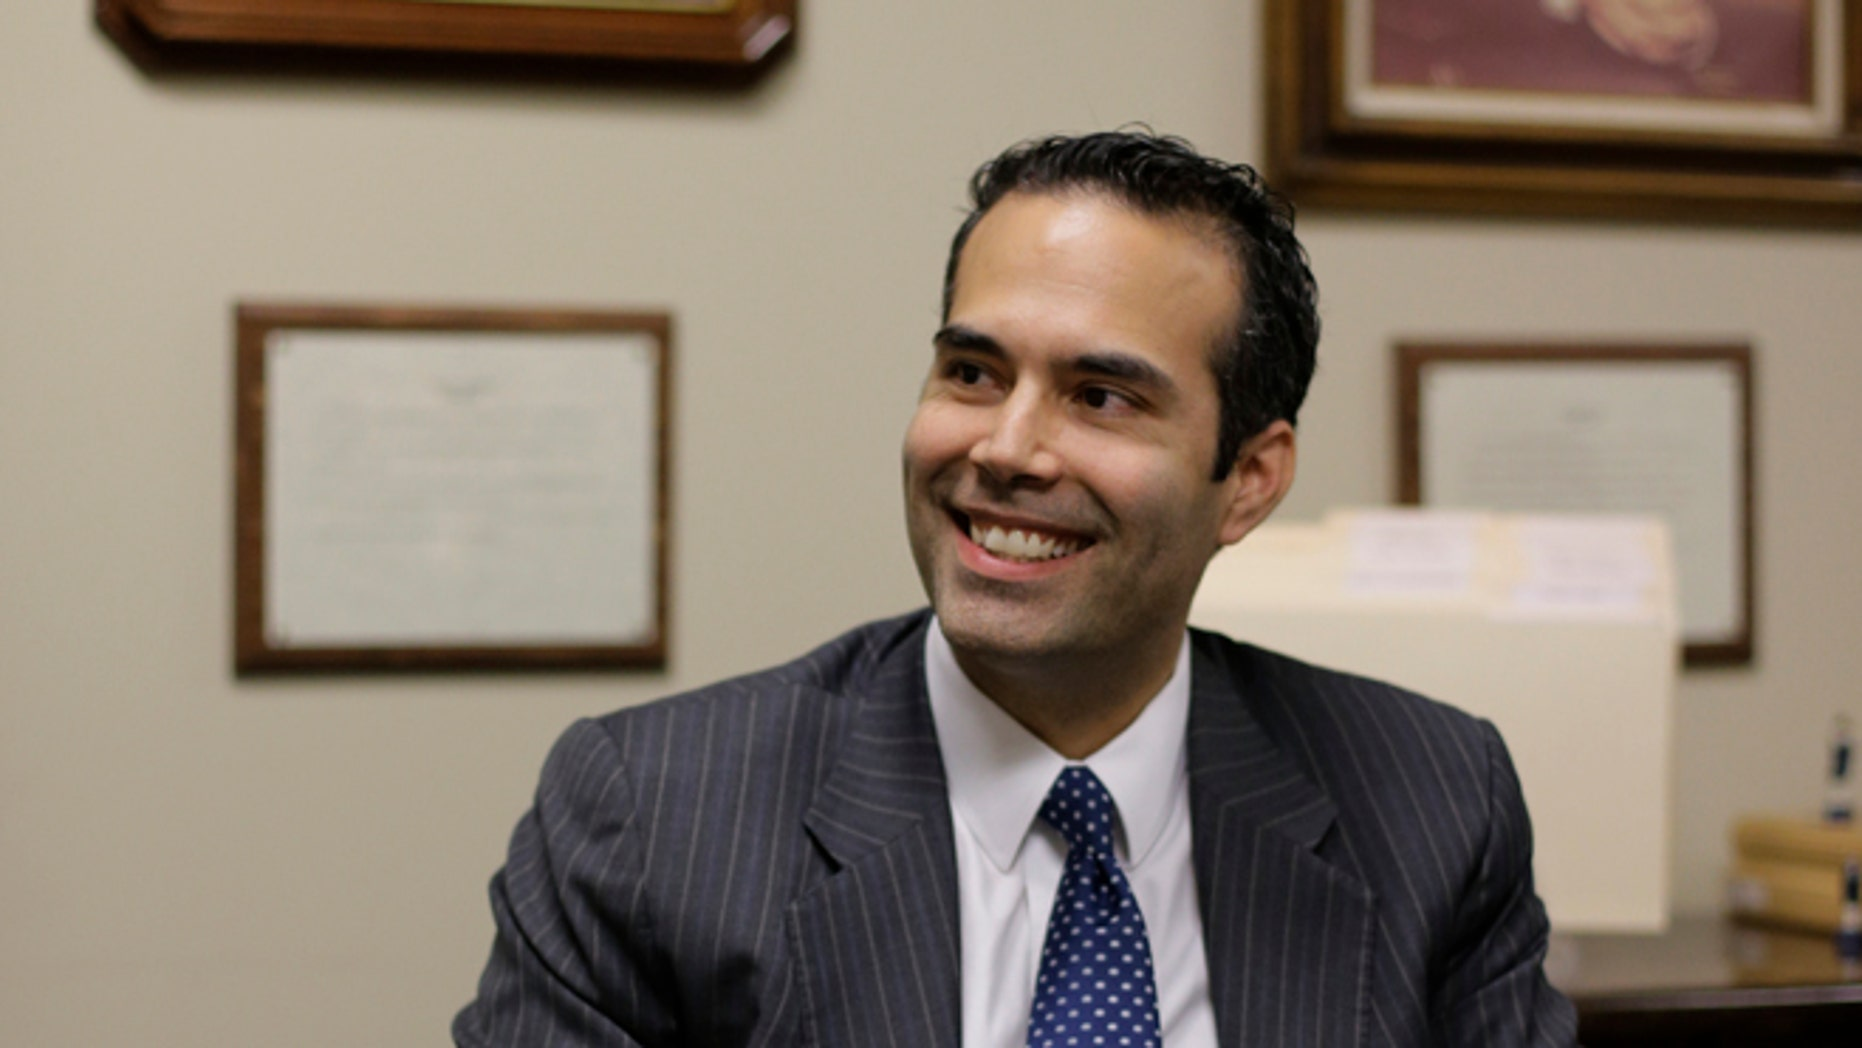 FILE: Nov. 19, 2013: George P. Bush visits the Republican Party of Texas headquarters where he formally filed to run for Texas land commissioner, in Austin, Texas.